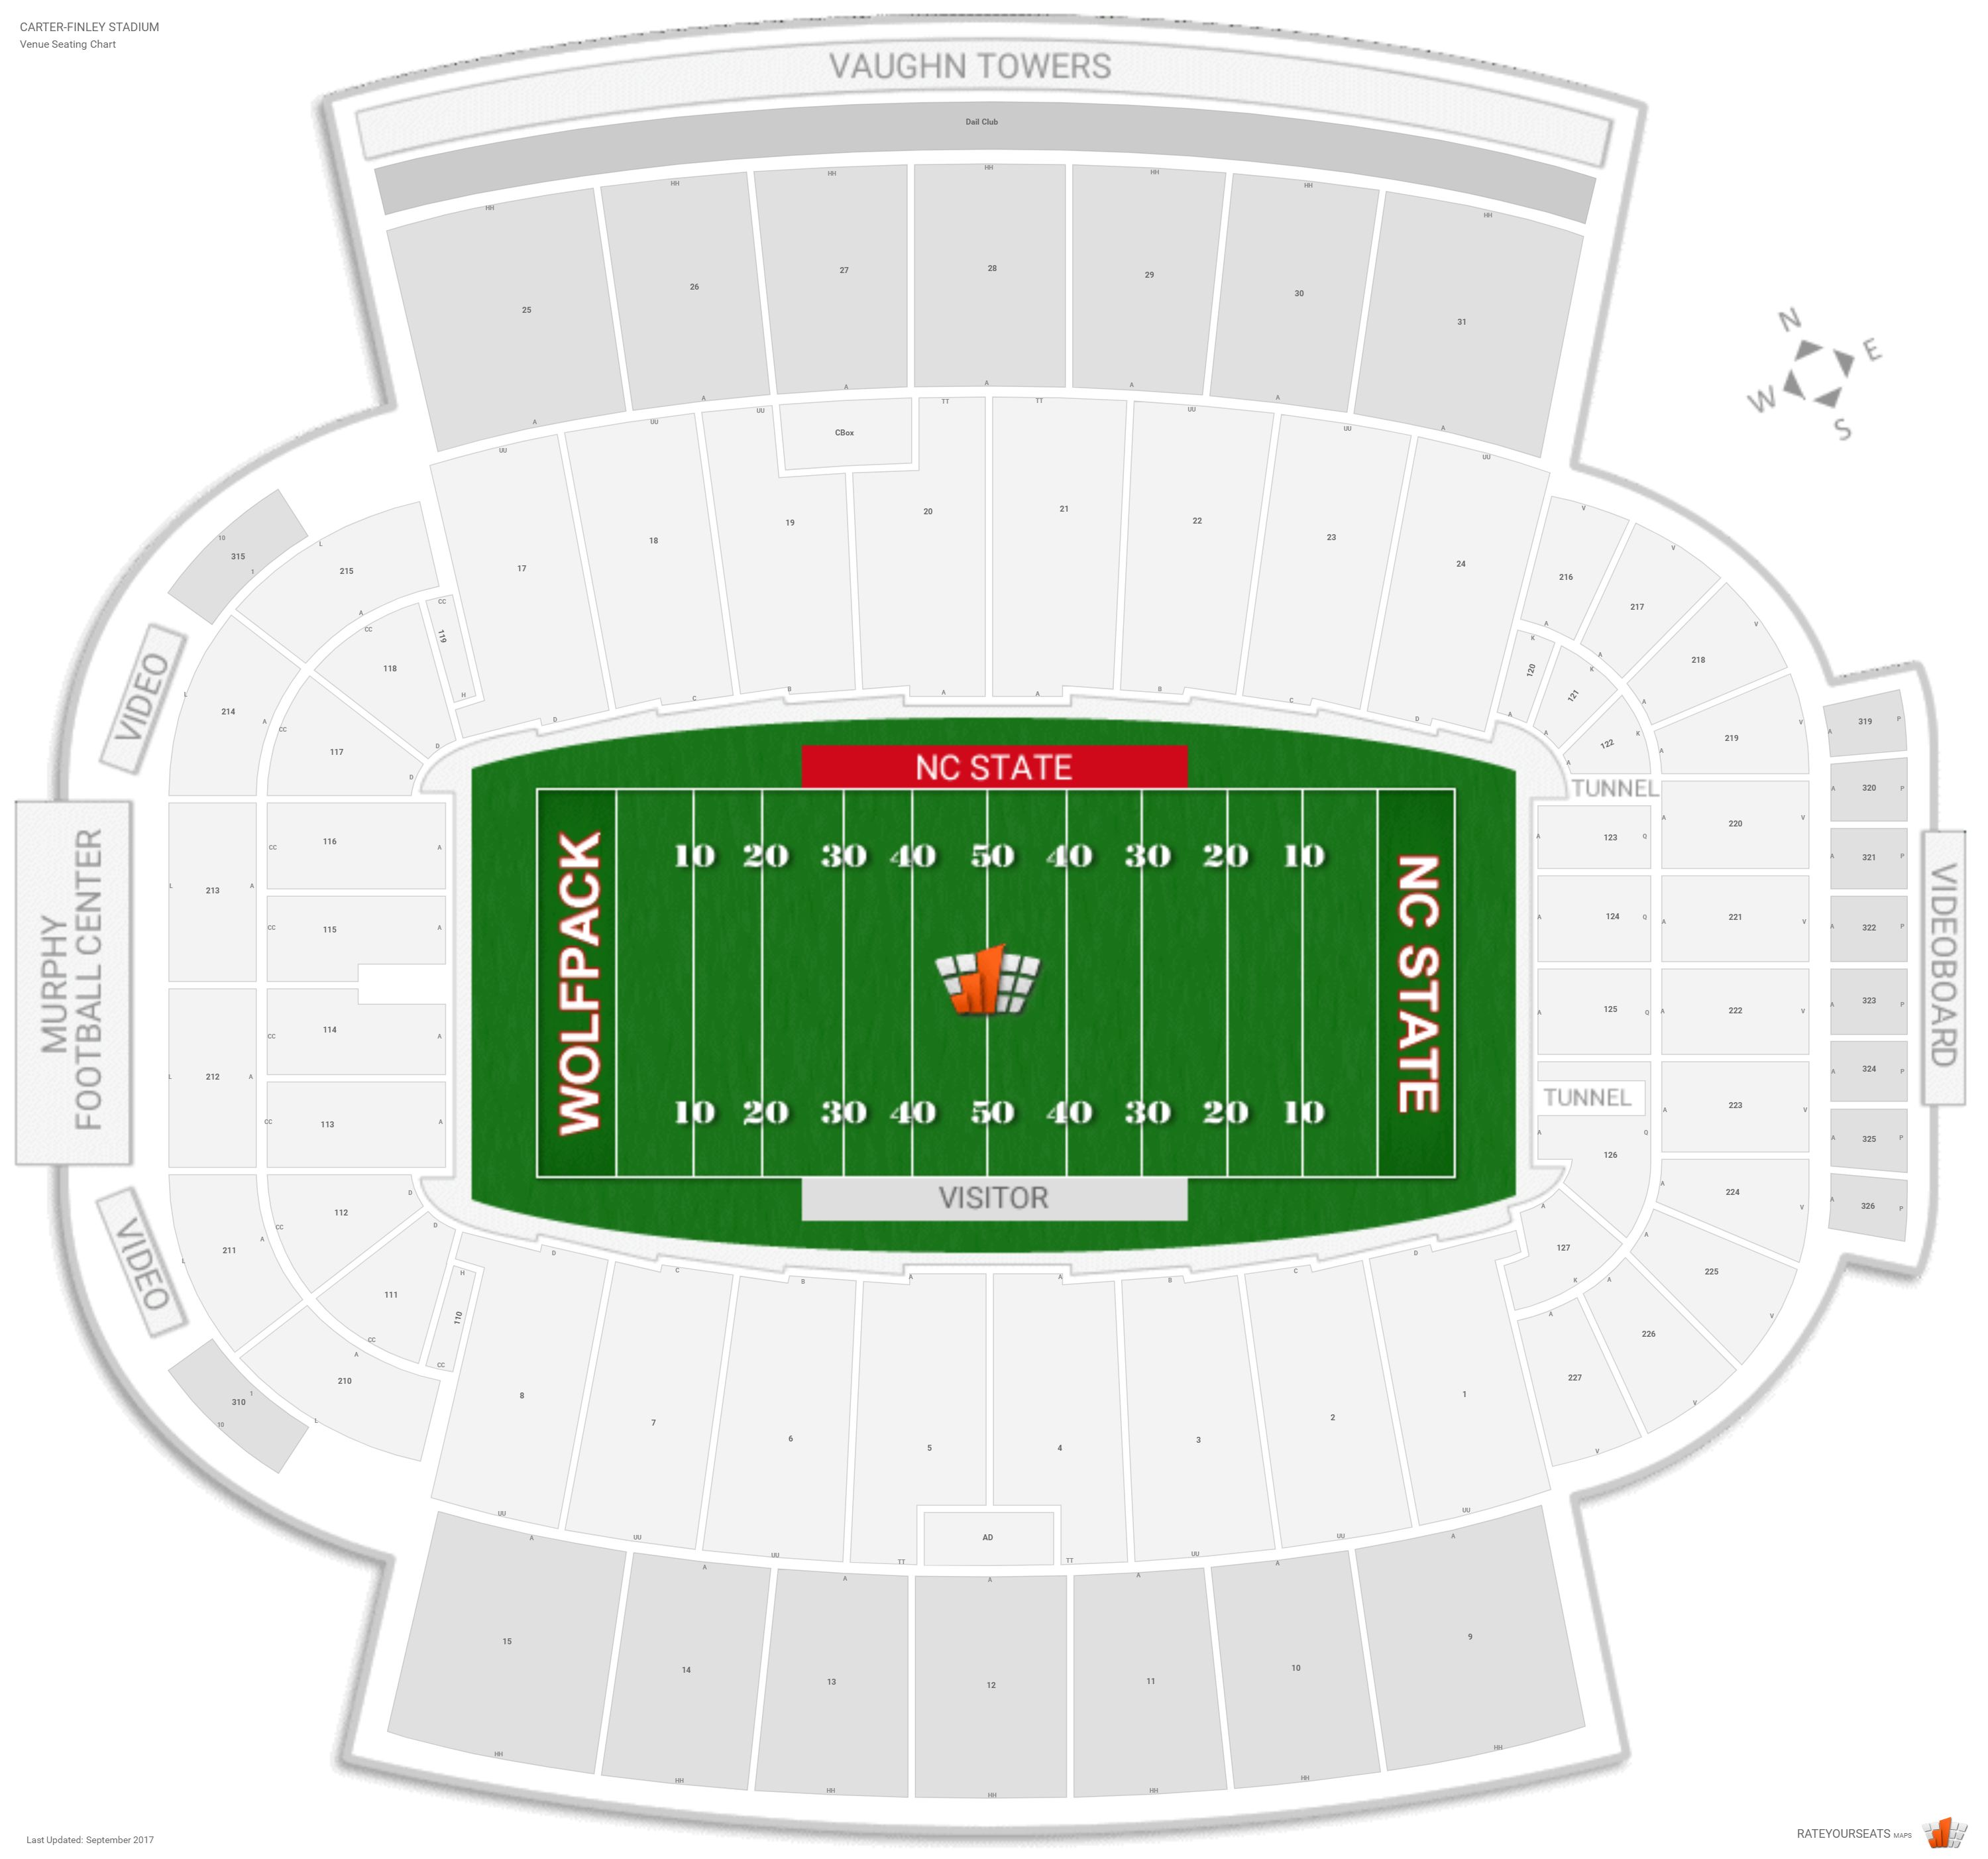 Carter finley stadium nc state seating guide rateyourseats com